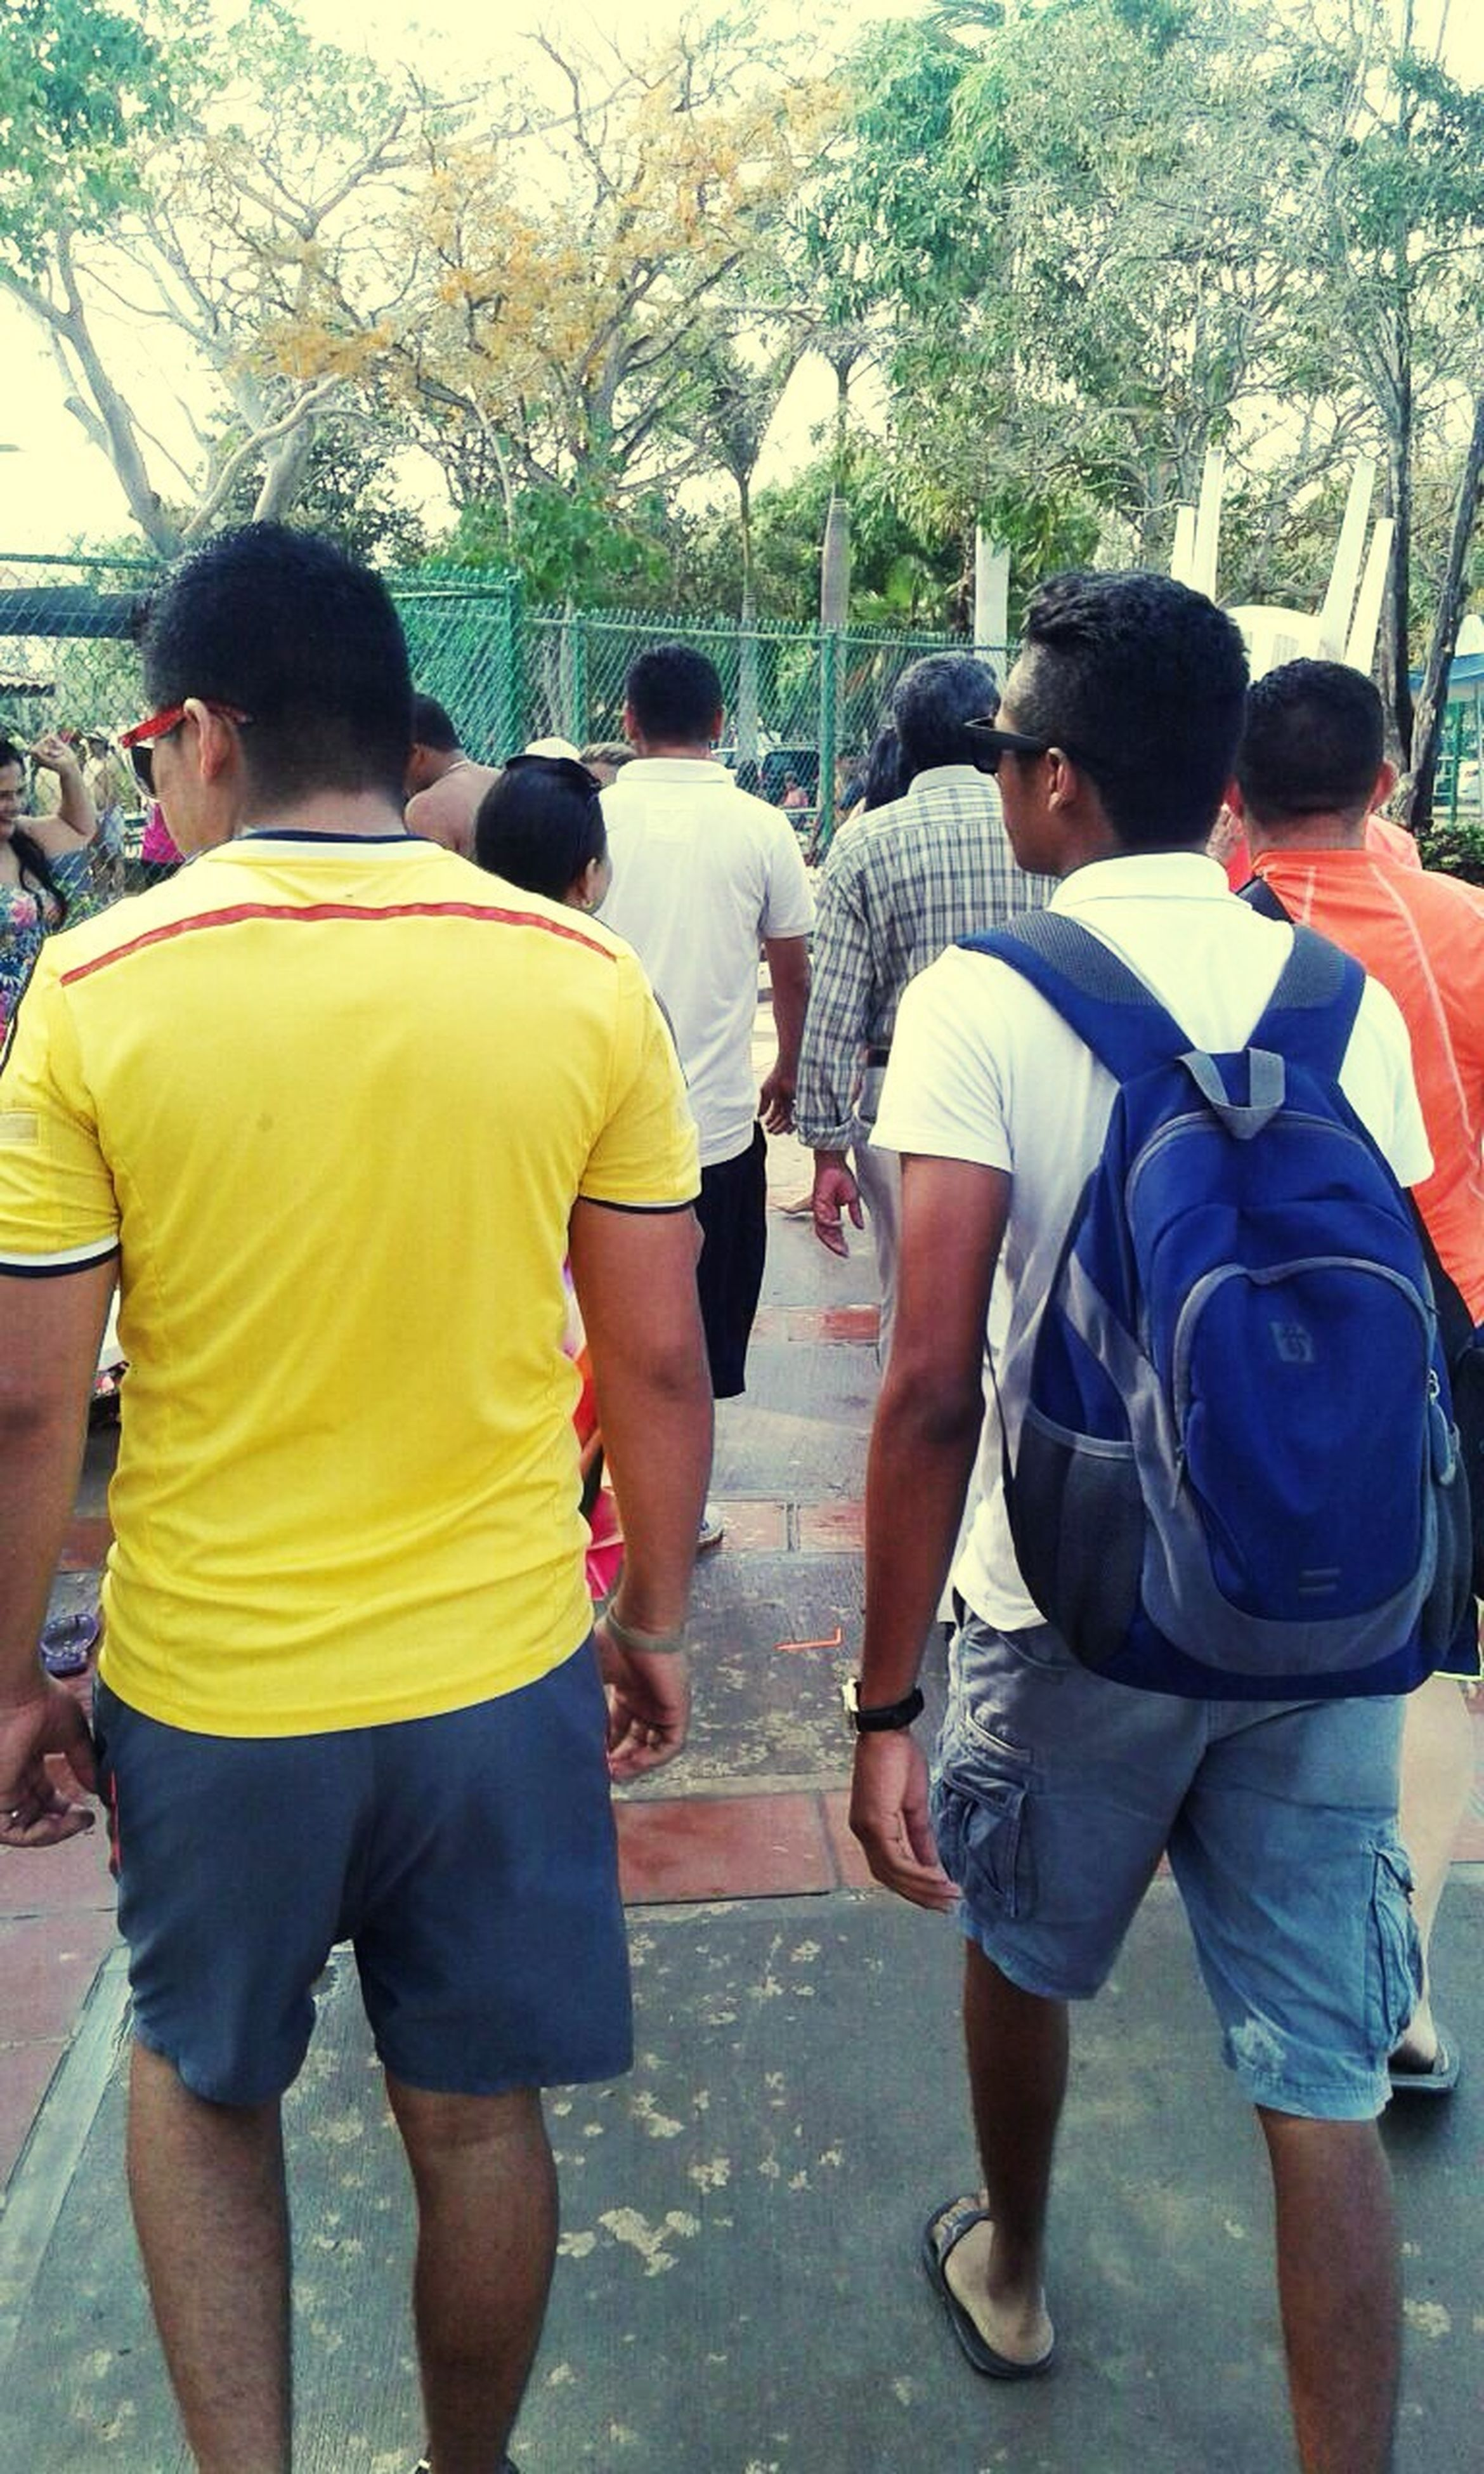 lifestyles, men, rear view, togetherness, leisure activity, casual clothing, bonding, tree, person, full length, walking, friendship, love, standing, backpack, holding hands